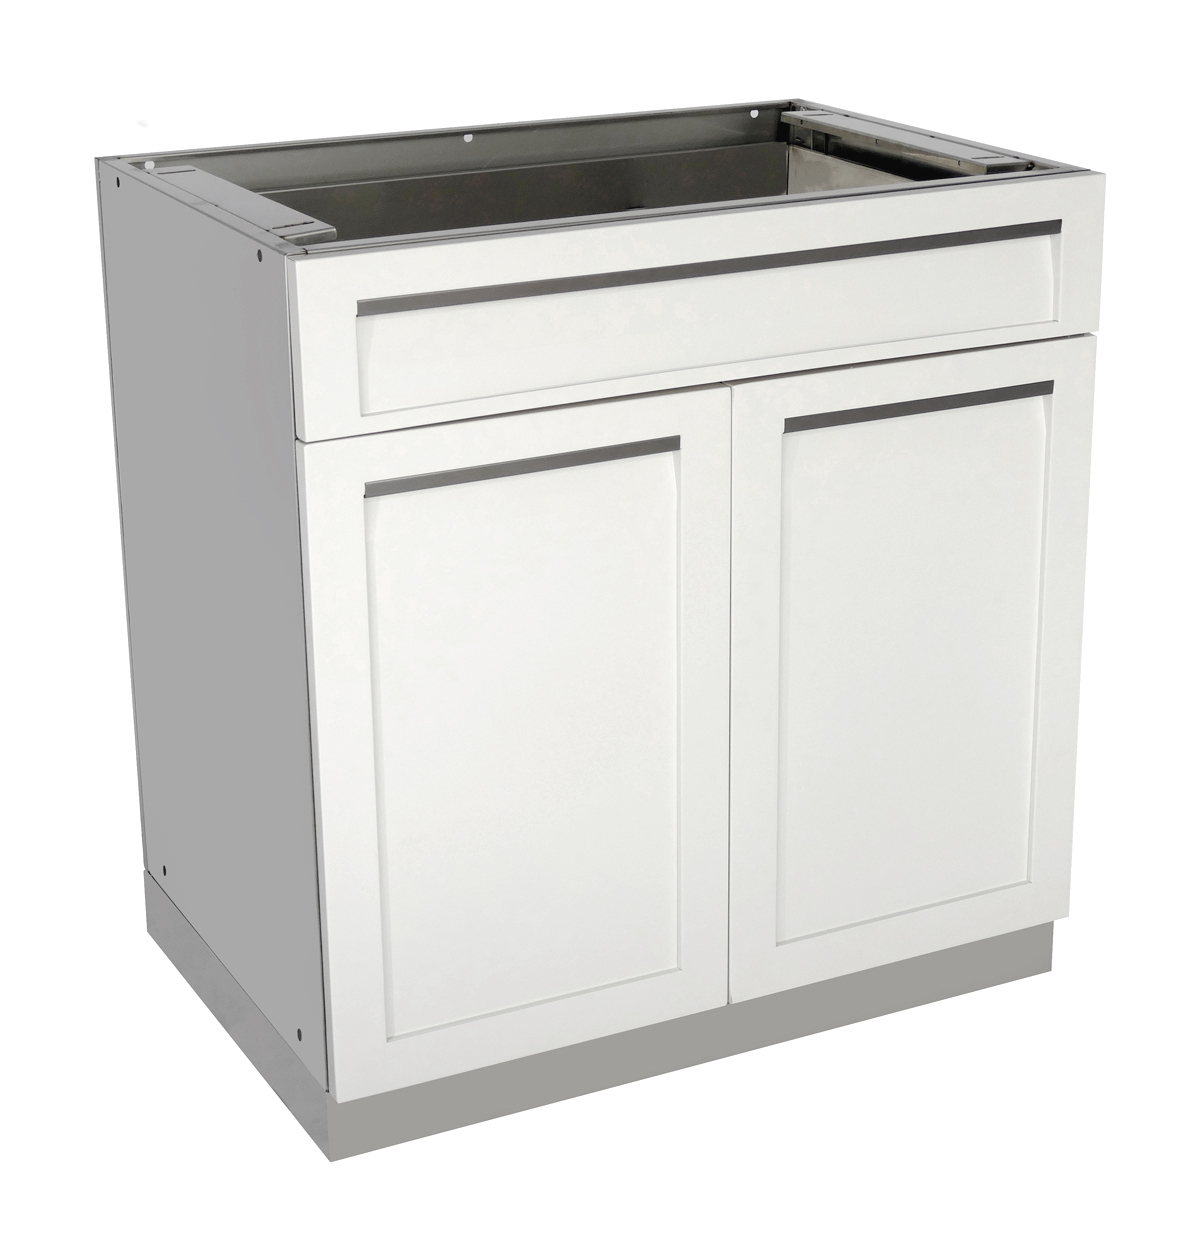 Drawer Plus 2 Door angle